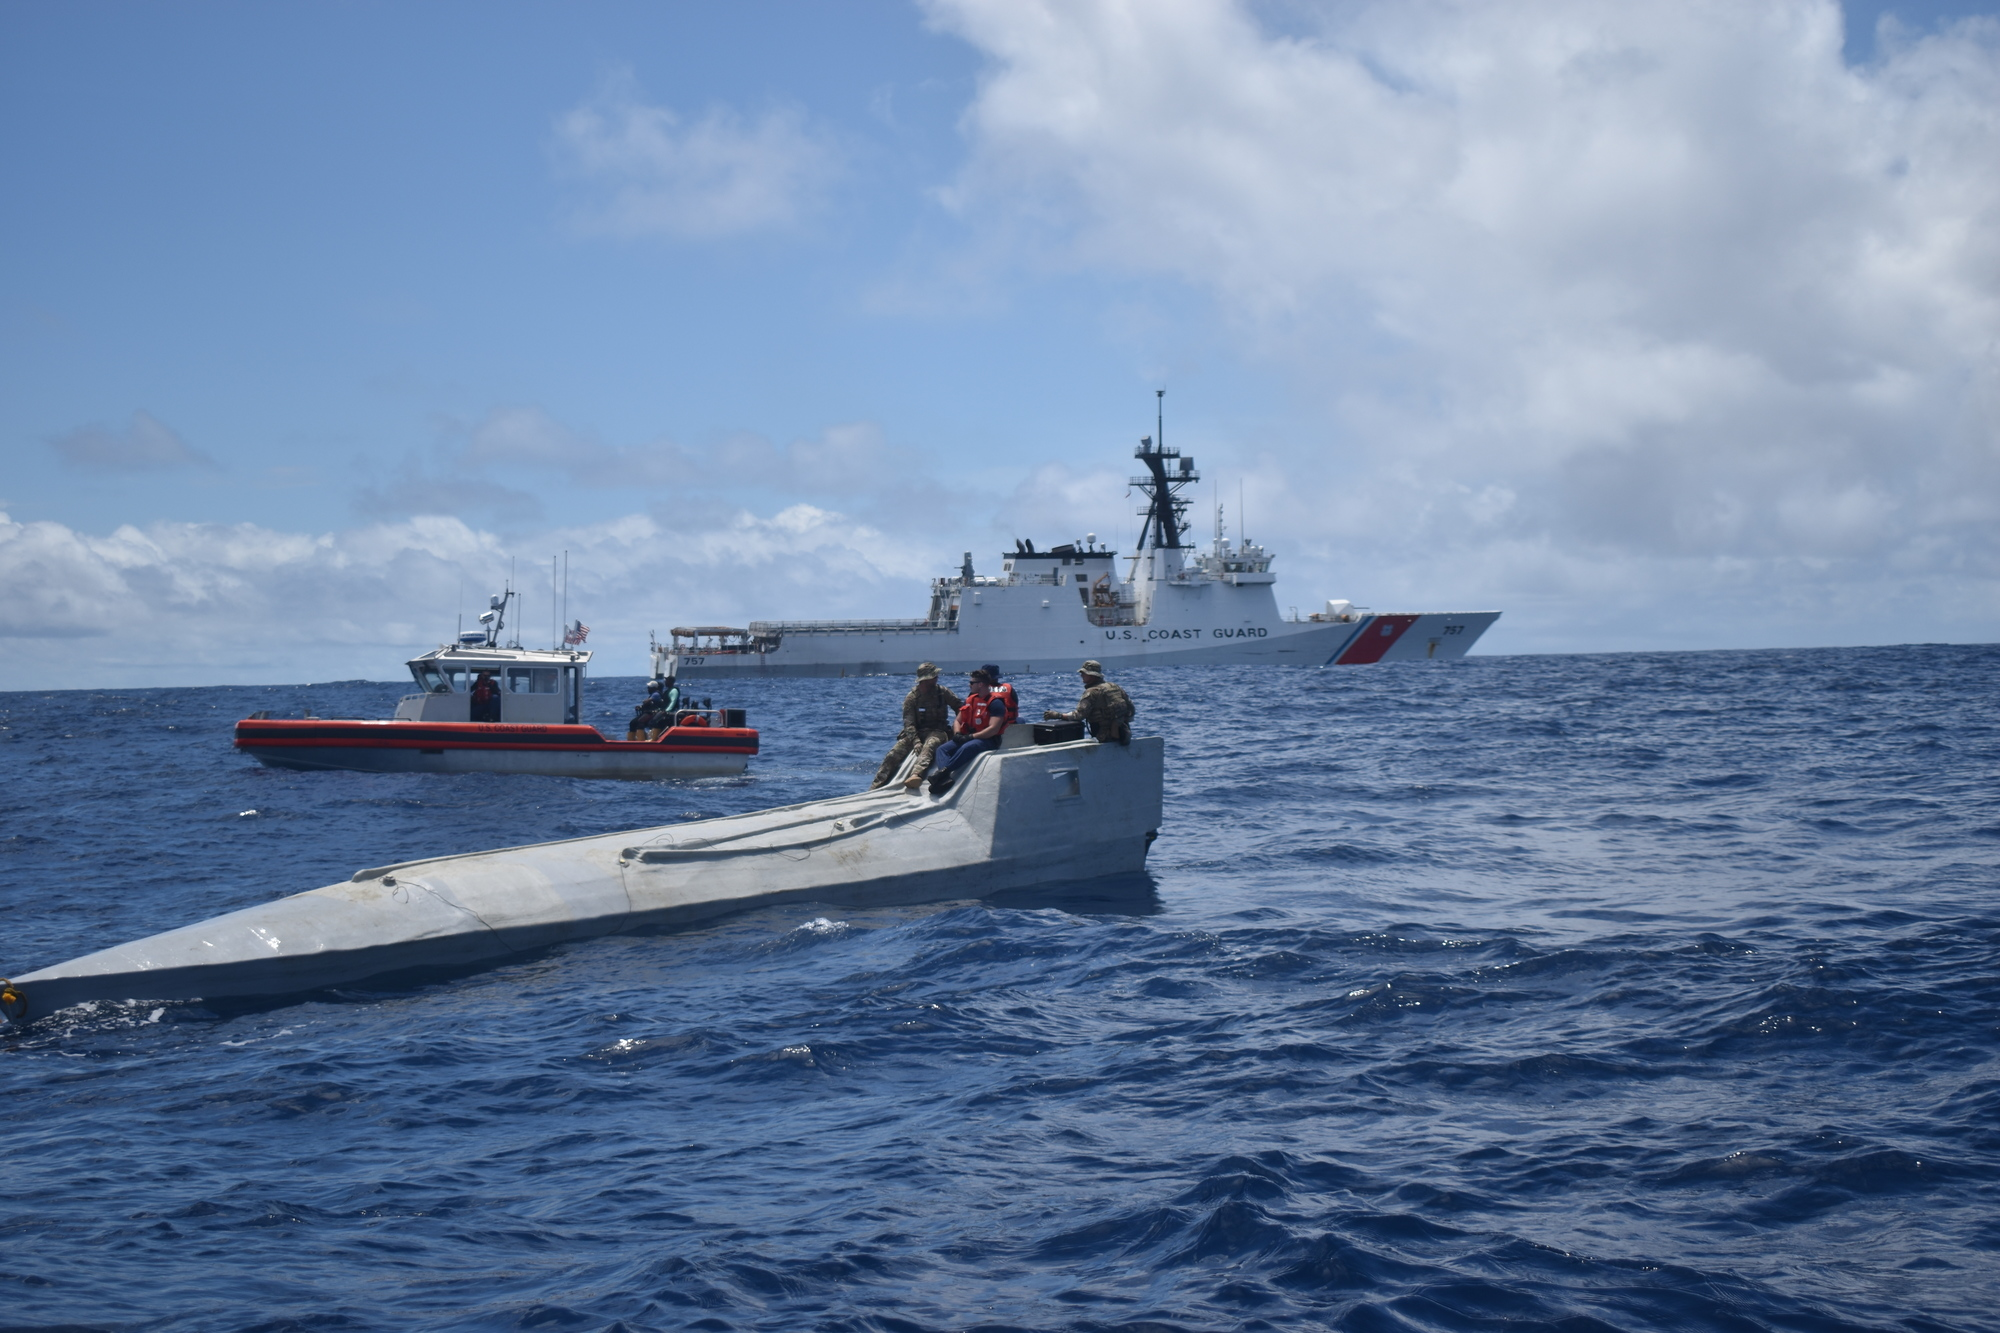 Coast Guard Cutter Midgett makes second cocaine seizure within five days, 4,600 pounds of cocaine interdicted